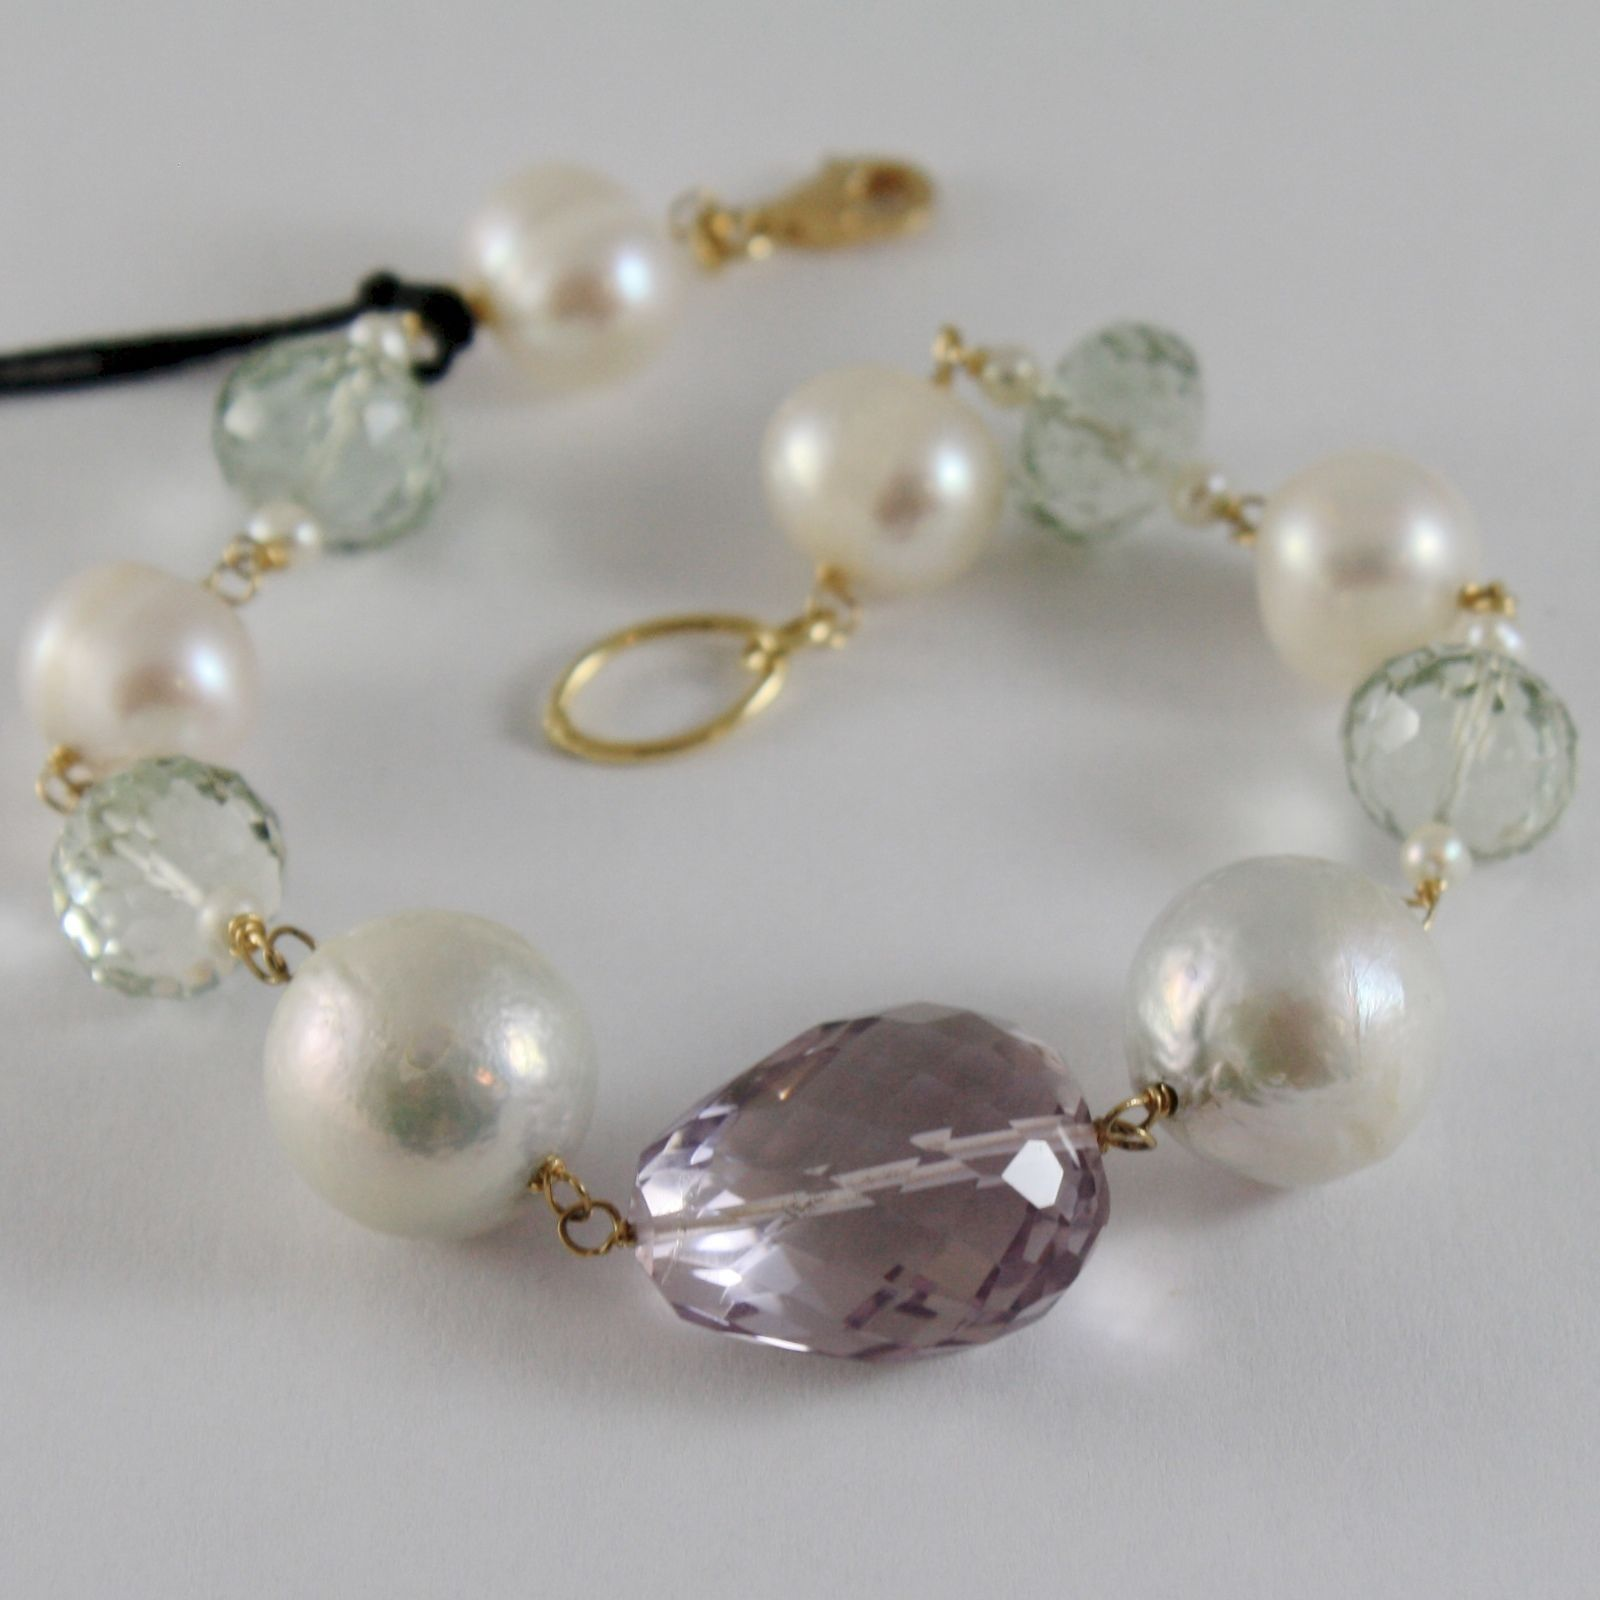 18K YELLOW GOLD BRACELET WITH BIG WHITE PEARLS AMETHYST PRASIOLITE MADE IN ITALY